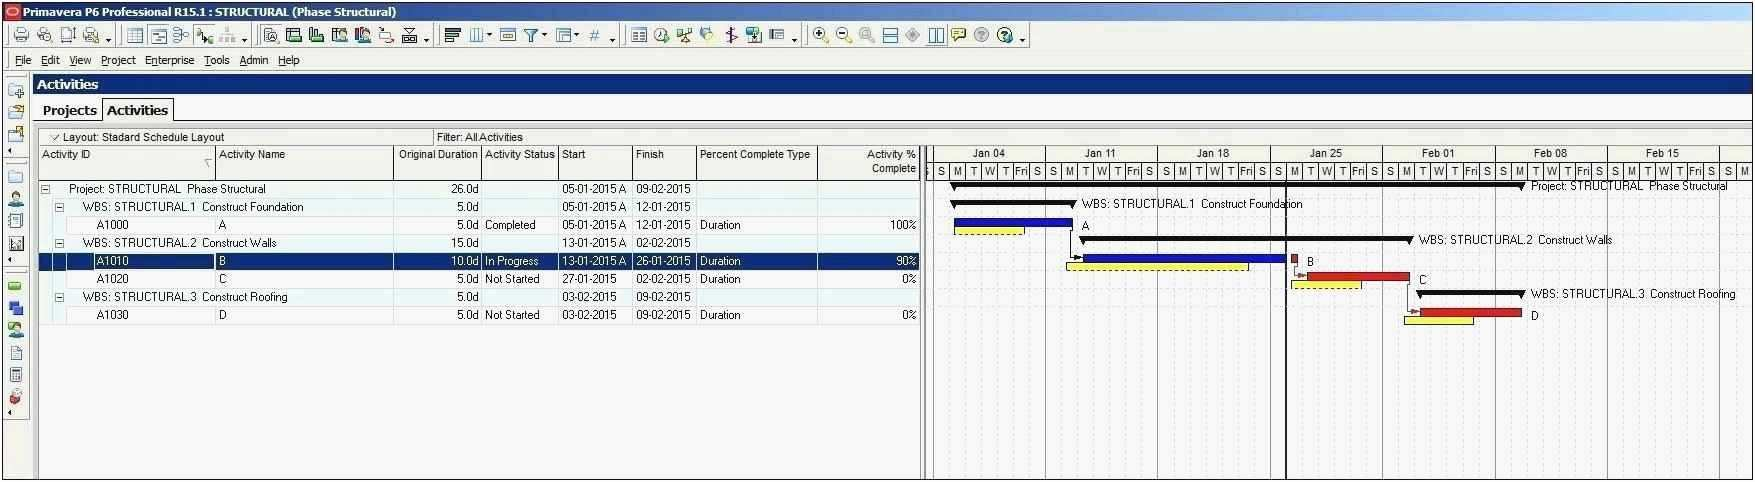 Project Status Tracker Excel Template In 2020 Project Management